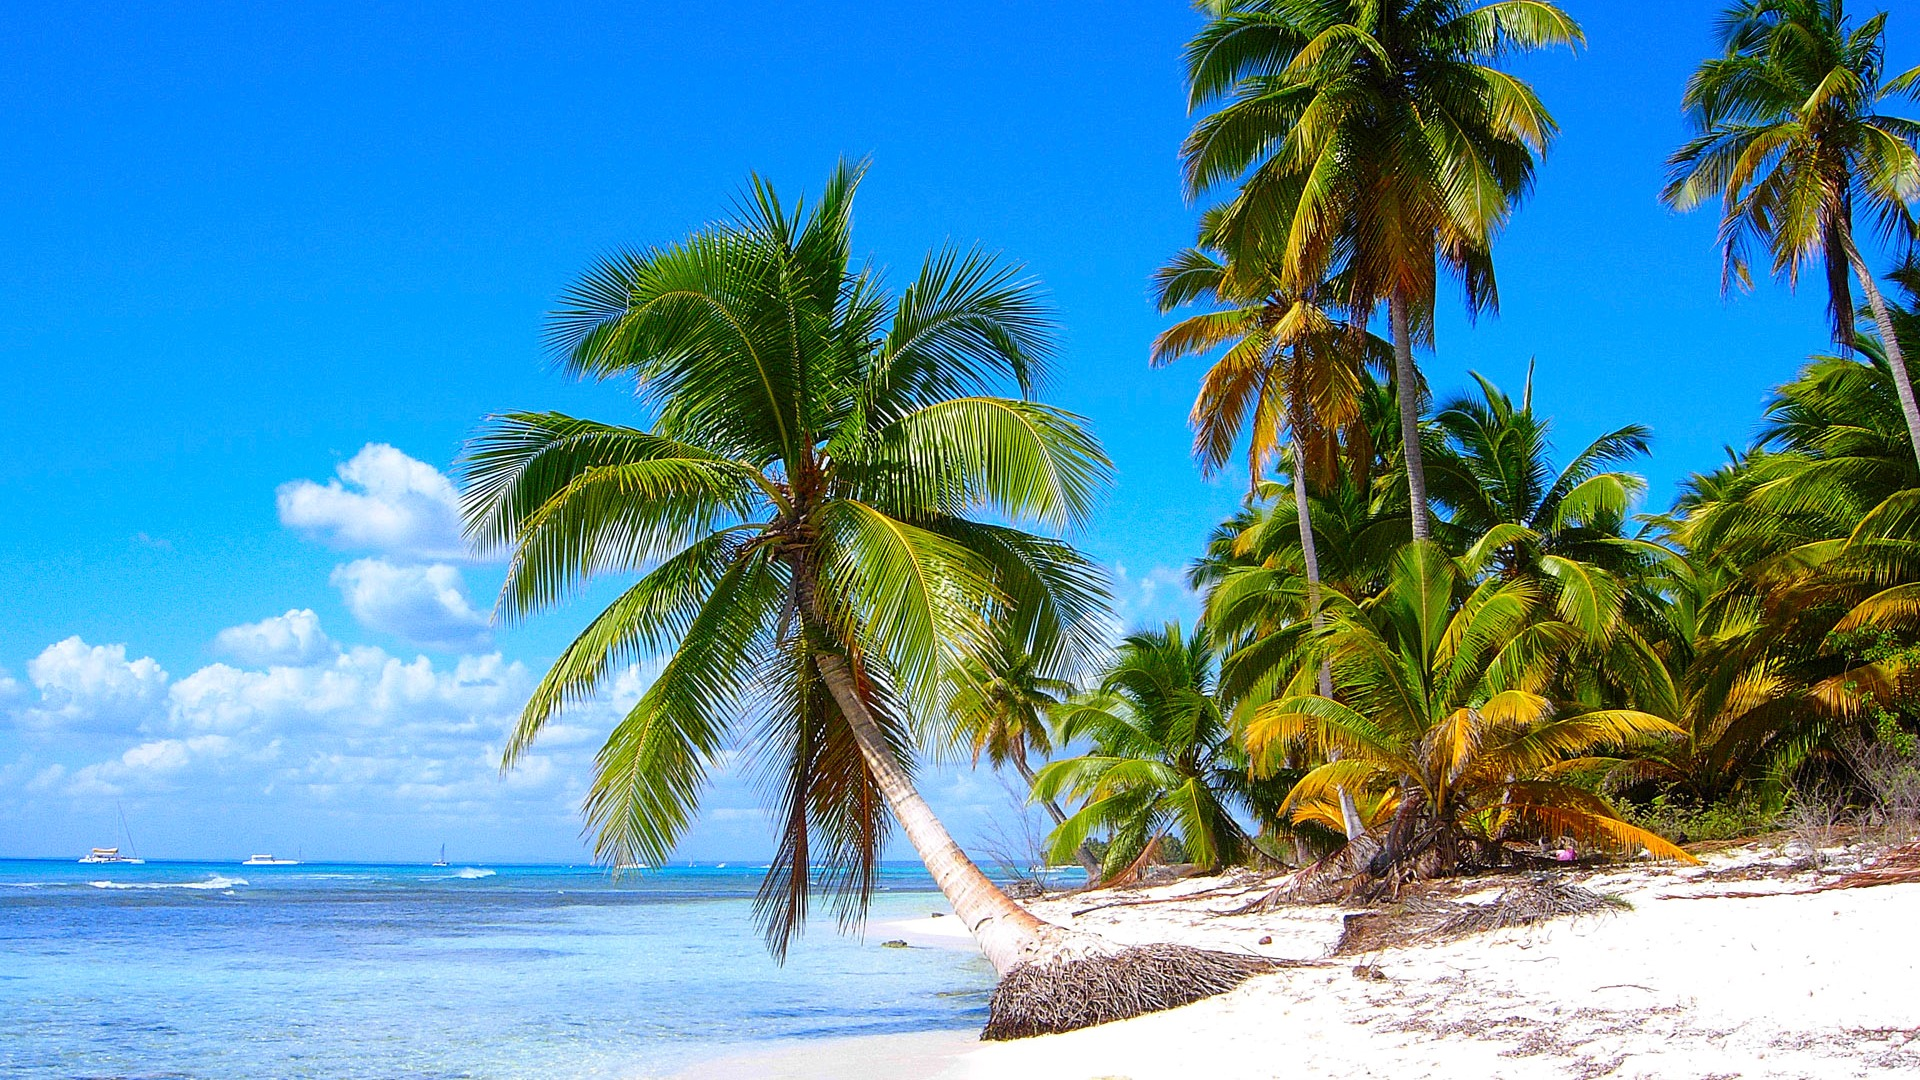 Download-sea-the-sky-clouds-tropics-palm-trees-island-section-Resolution-wallpaper-wp3404982